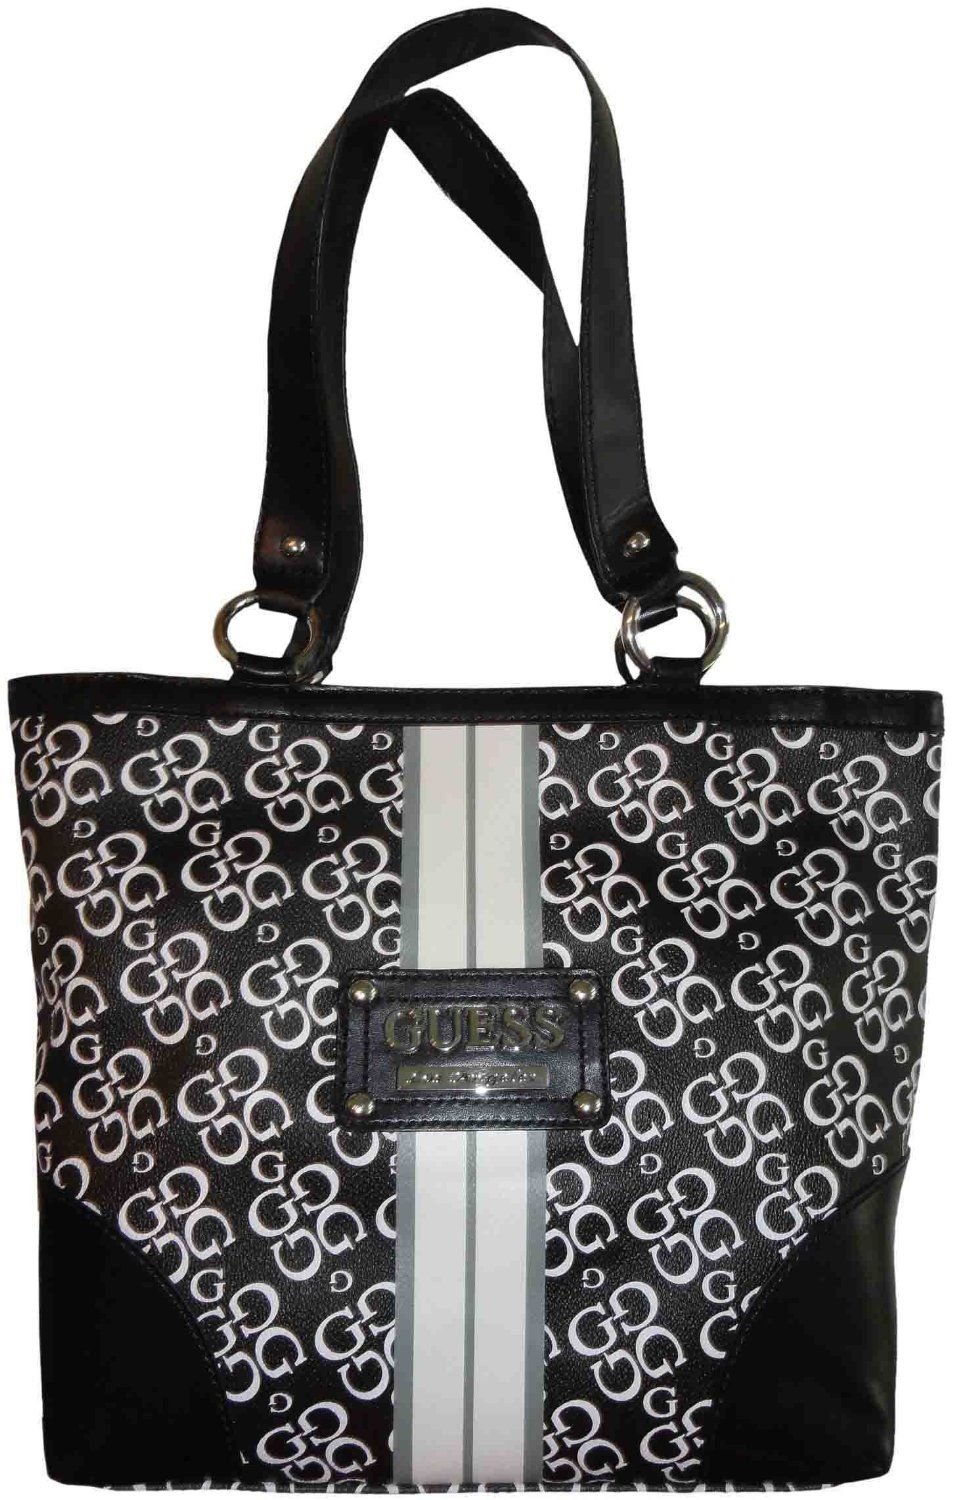 VIDA Tote Bag - SILVER HEARTS by VIDA